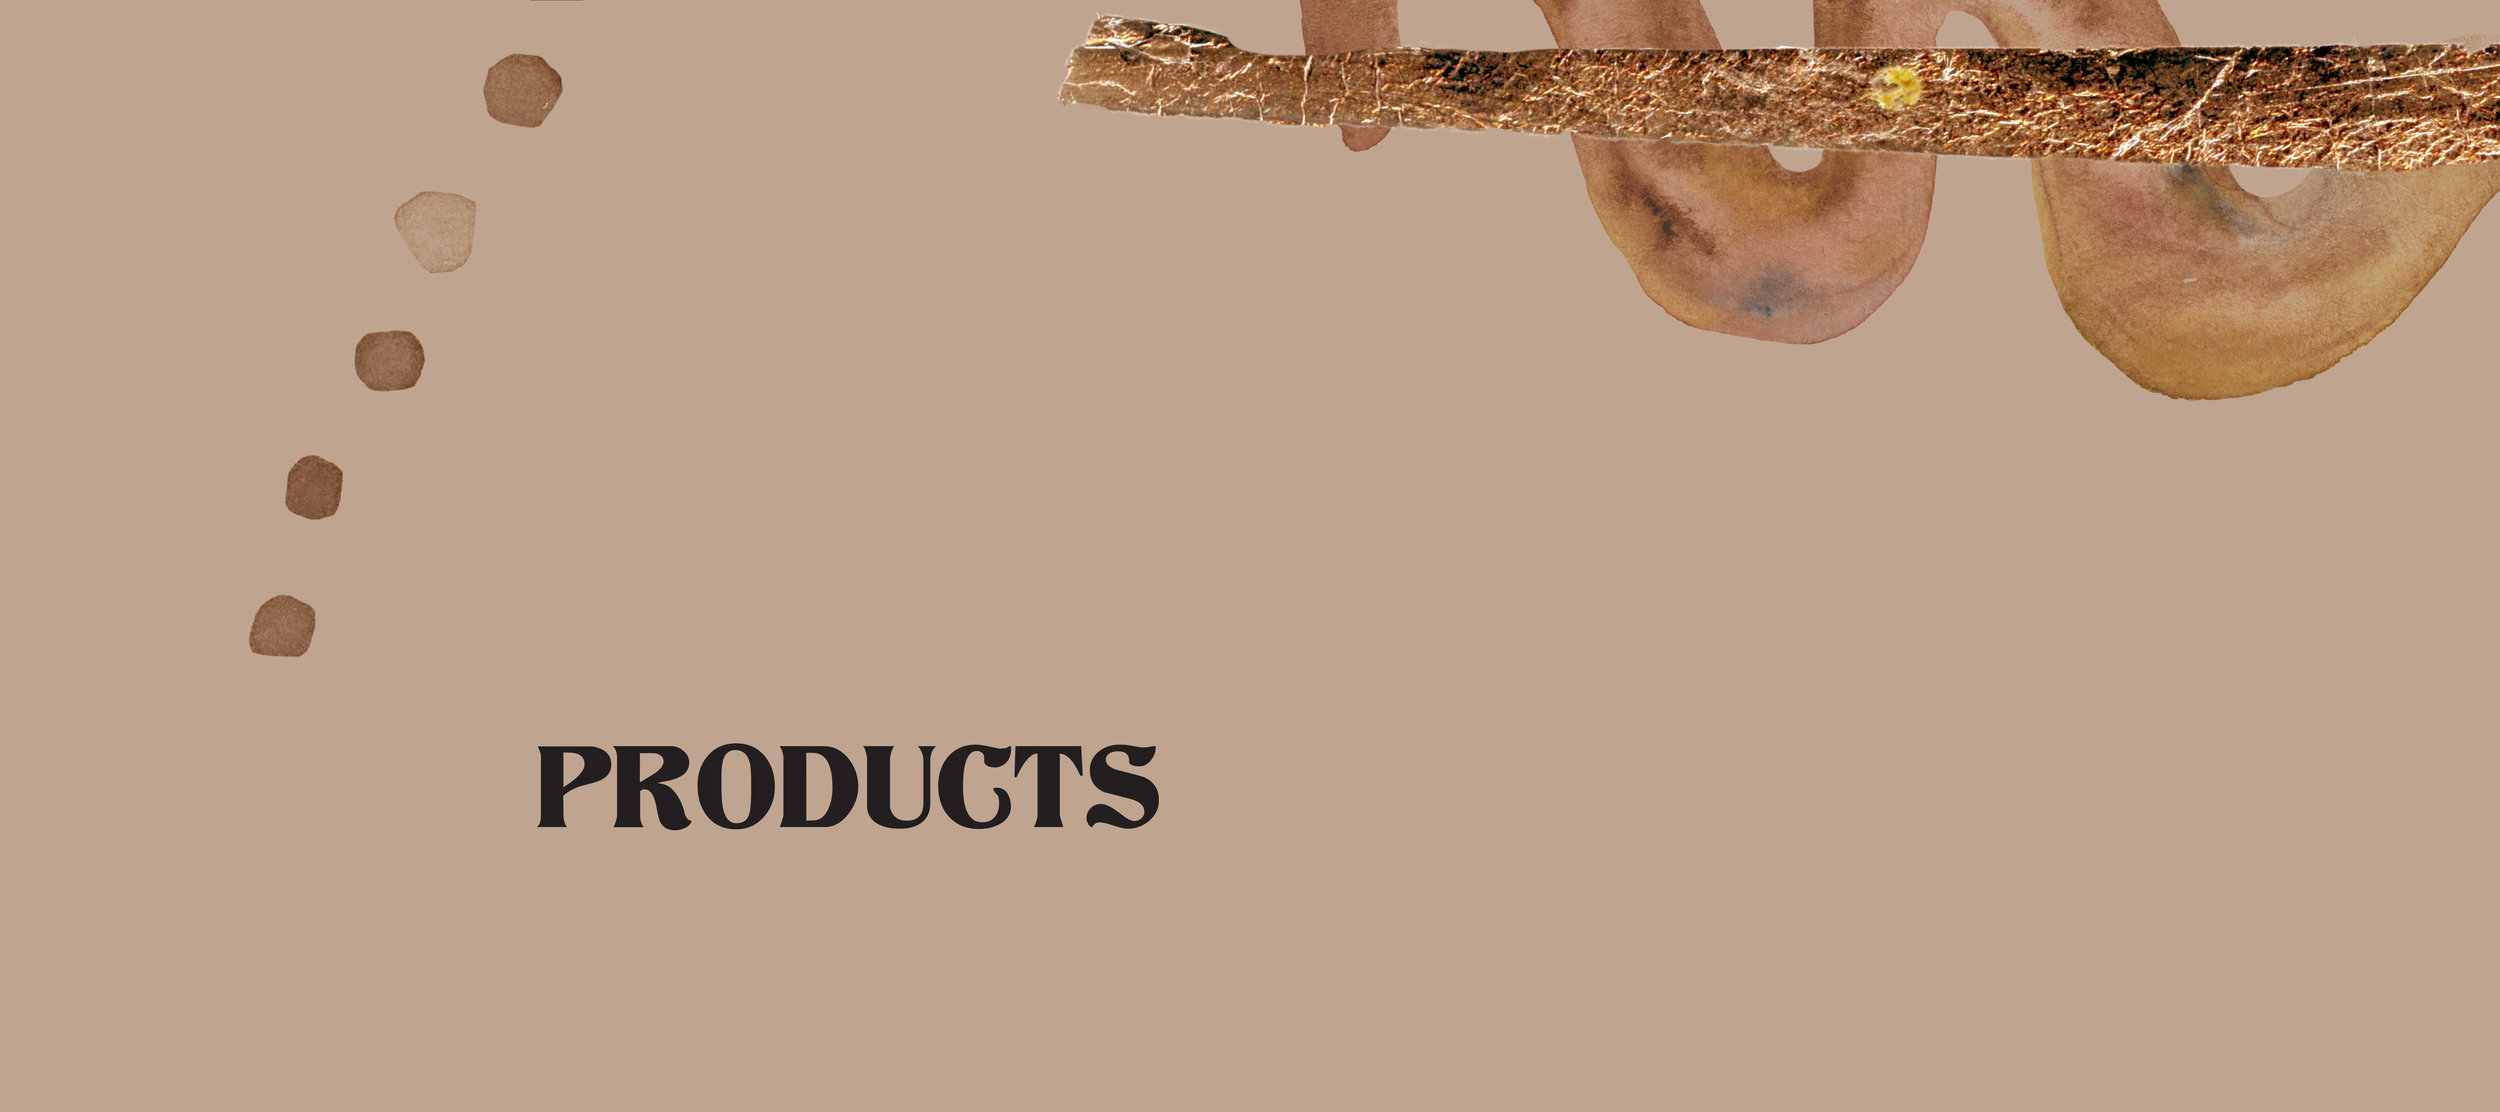 products-03.jpg